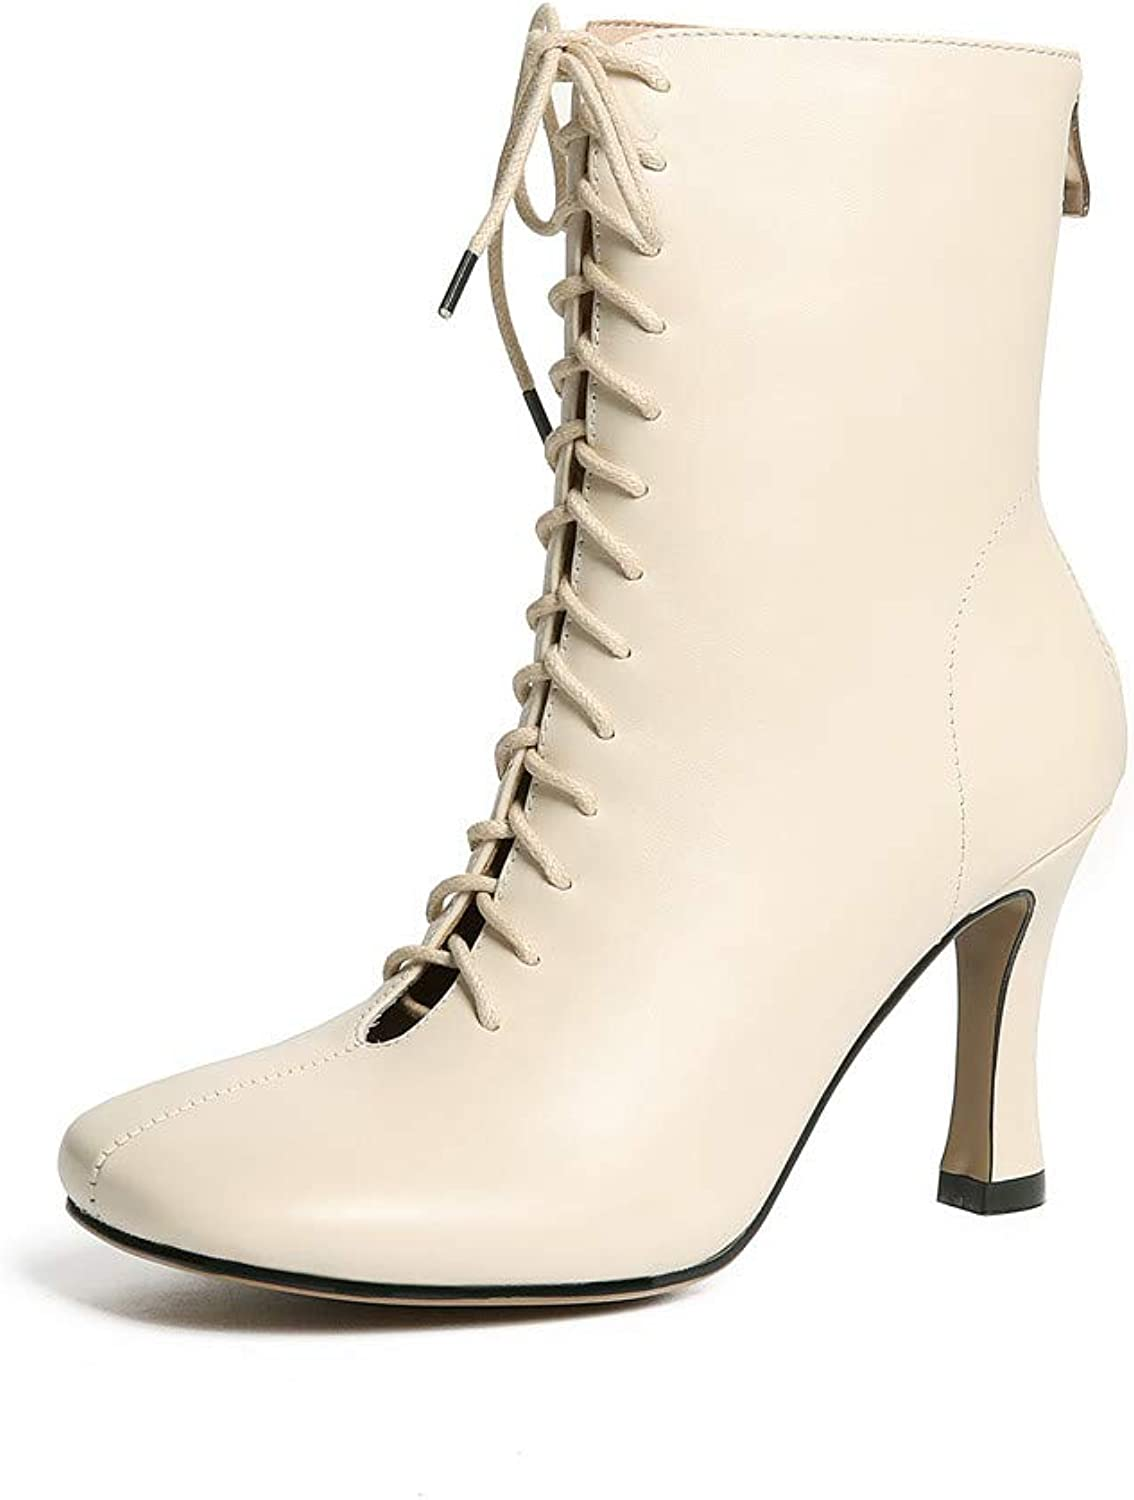 Nine Seven Women's Genuine Leather Square Toe Sexy Stiletto Heel Handmade Glossy and Comfortable Ankle Boots